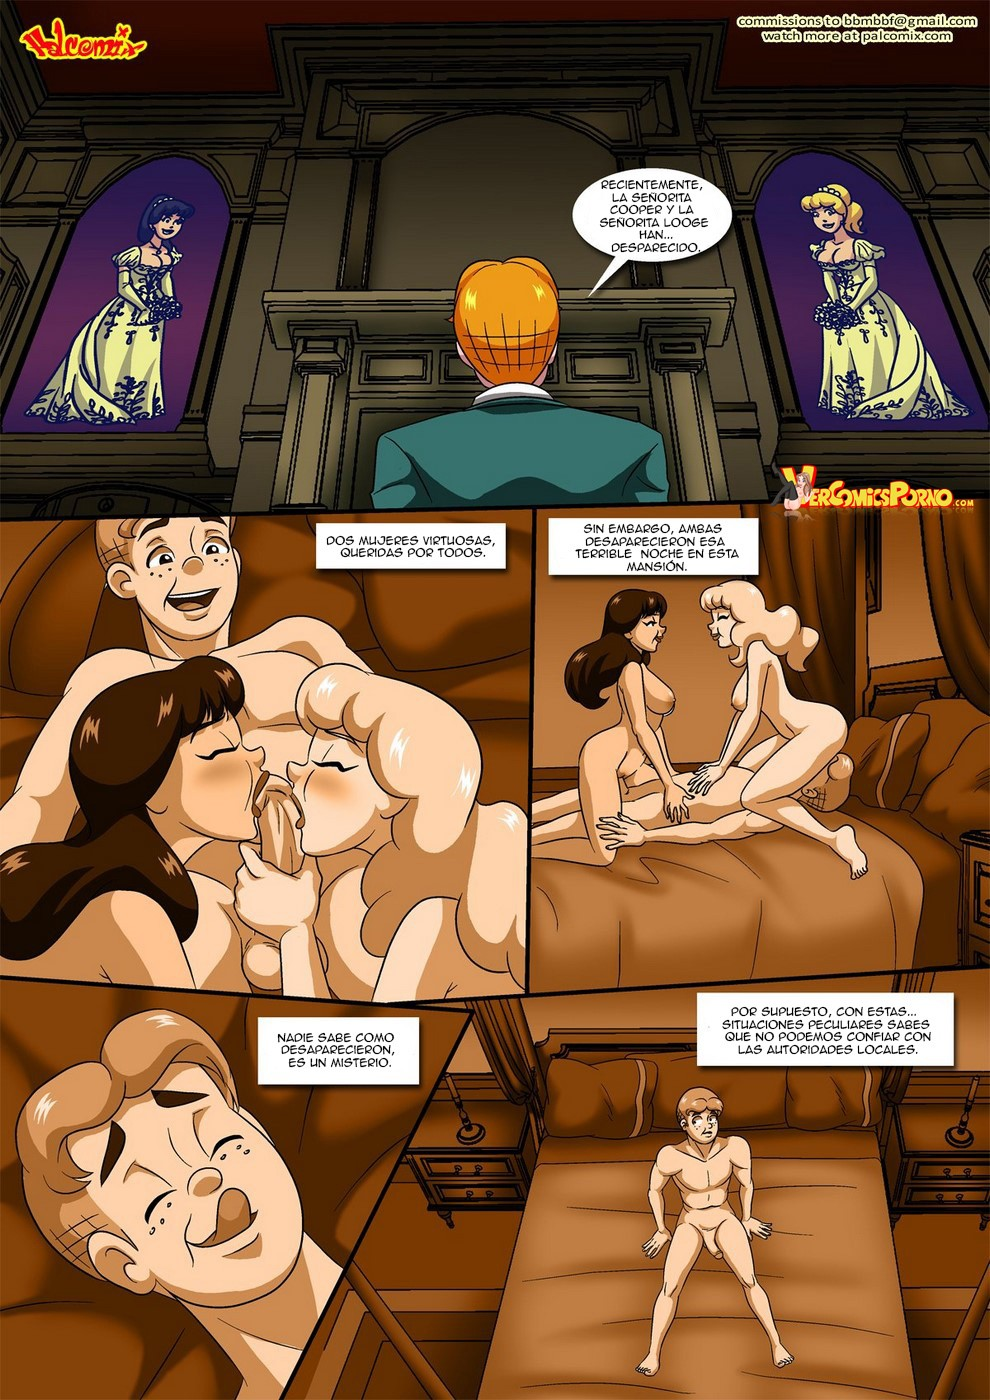 Palcomix-Tales-from-Riverdales-Girls-2-26.jpg